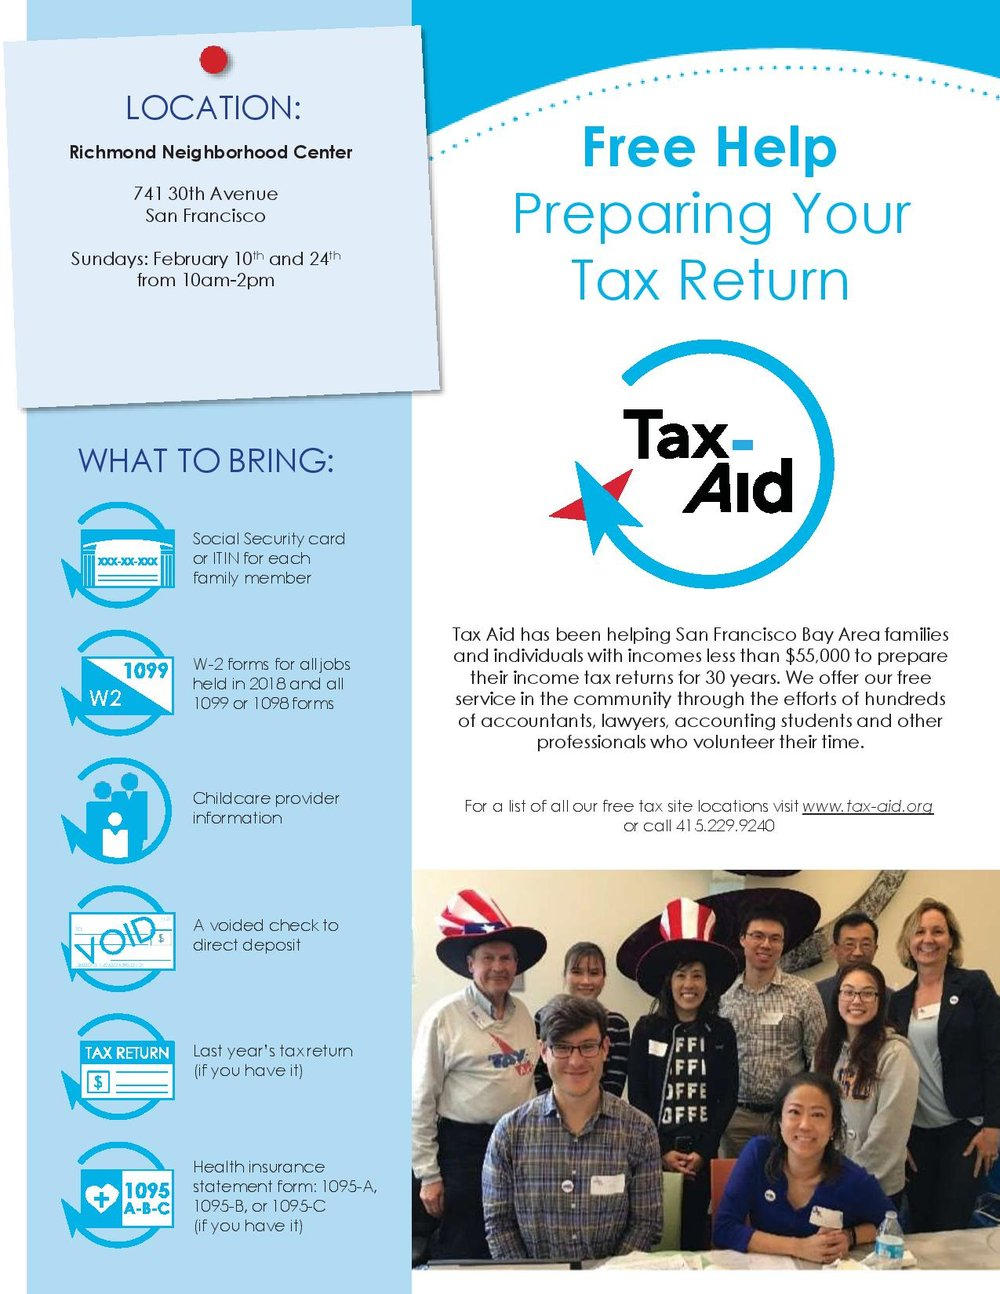 Tax-Aid_Single Site Flyer - Richmond Neighborhood Center-page-001.jpg